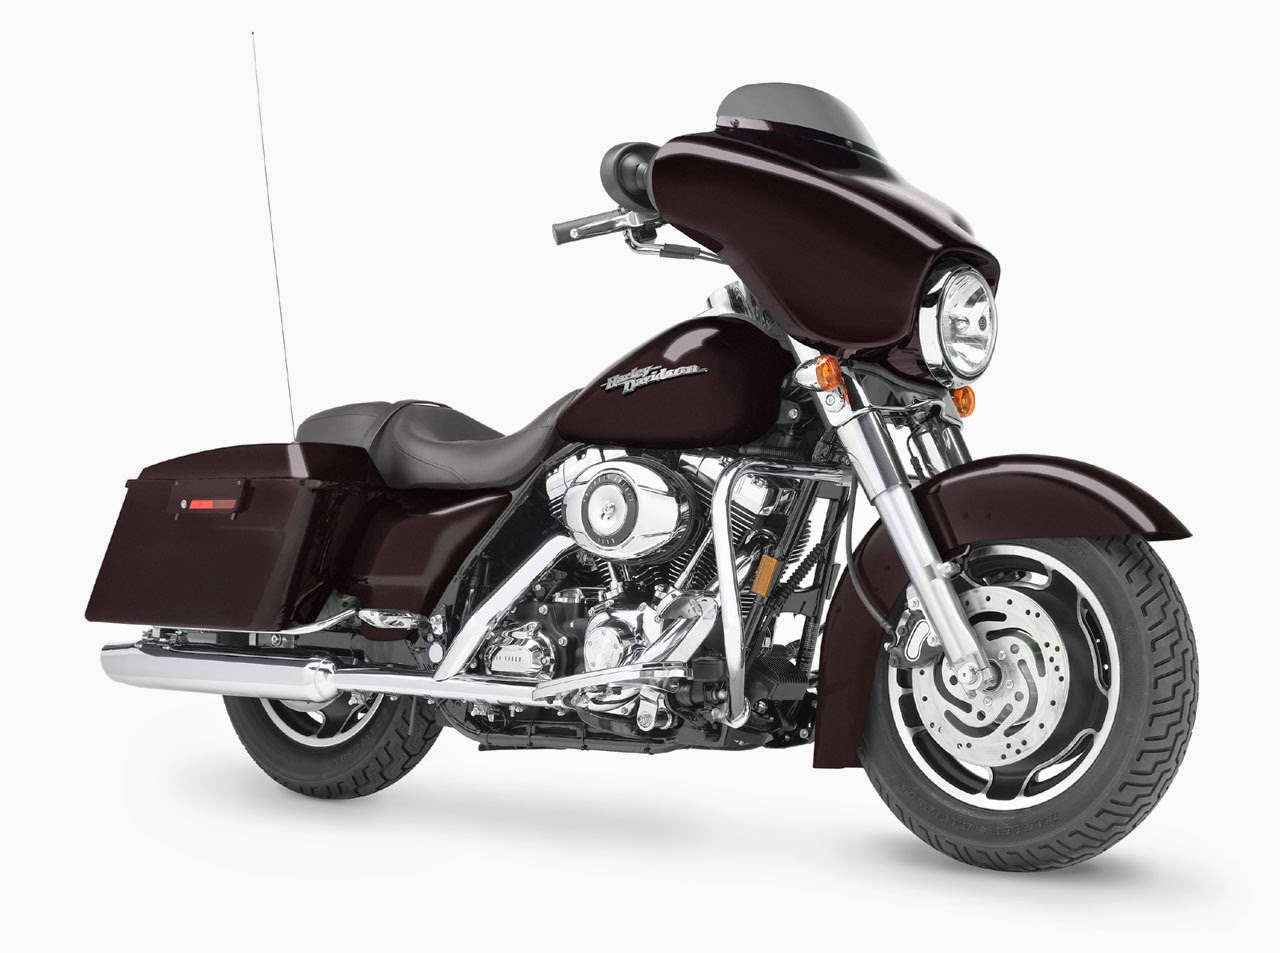 2012 softail service manual pdf